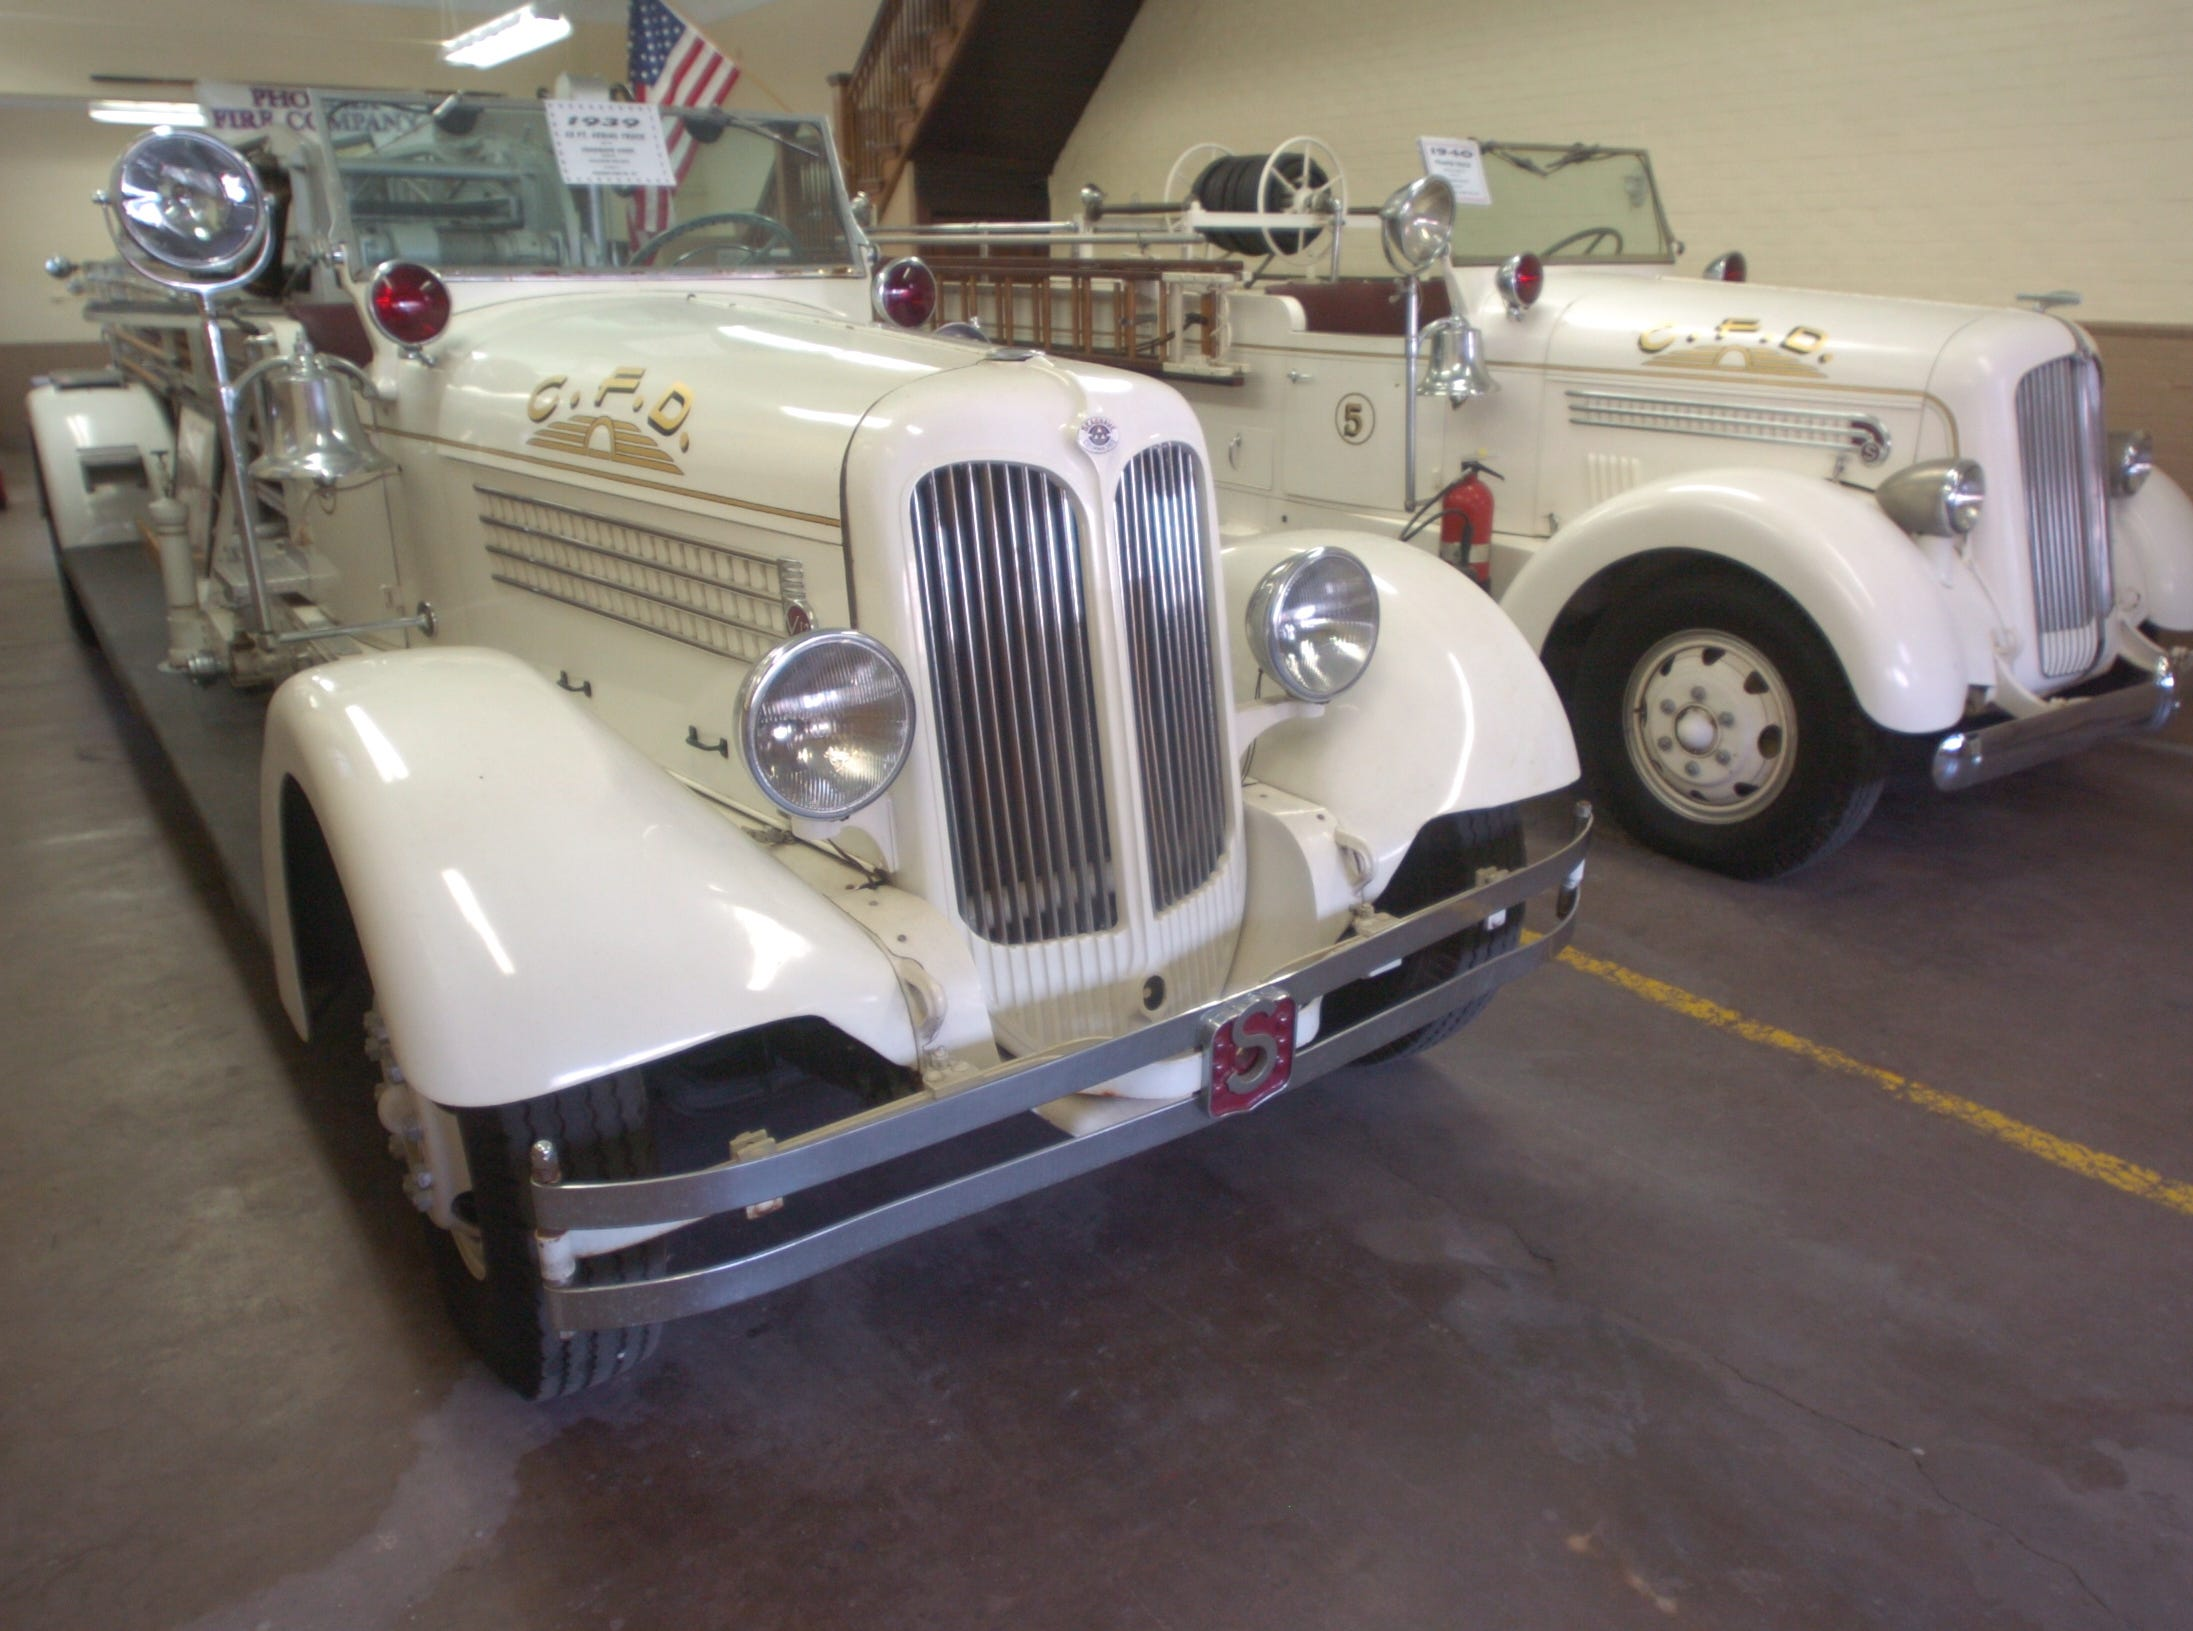 A 1938 aerial truck and 1940 pumper truck are among the historic fire equipment in the Phoenix Firehouse Museum on East Second Street.